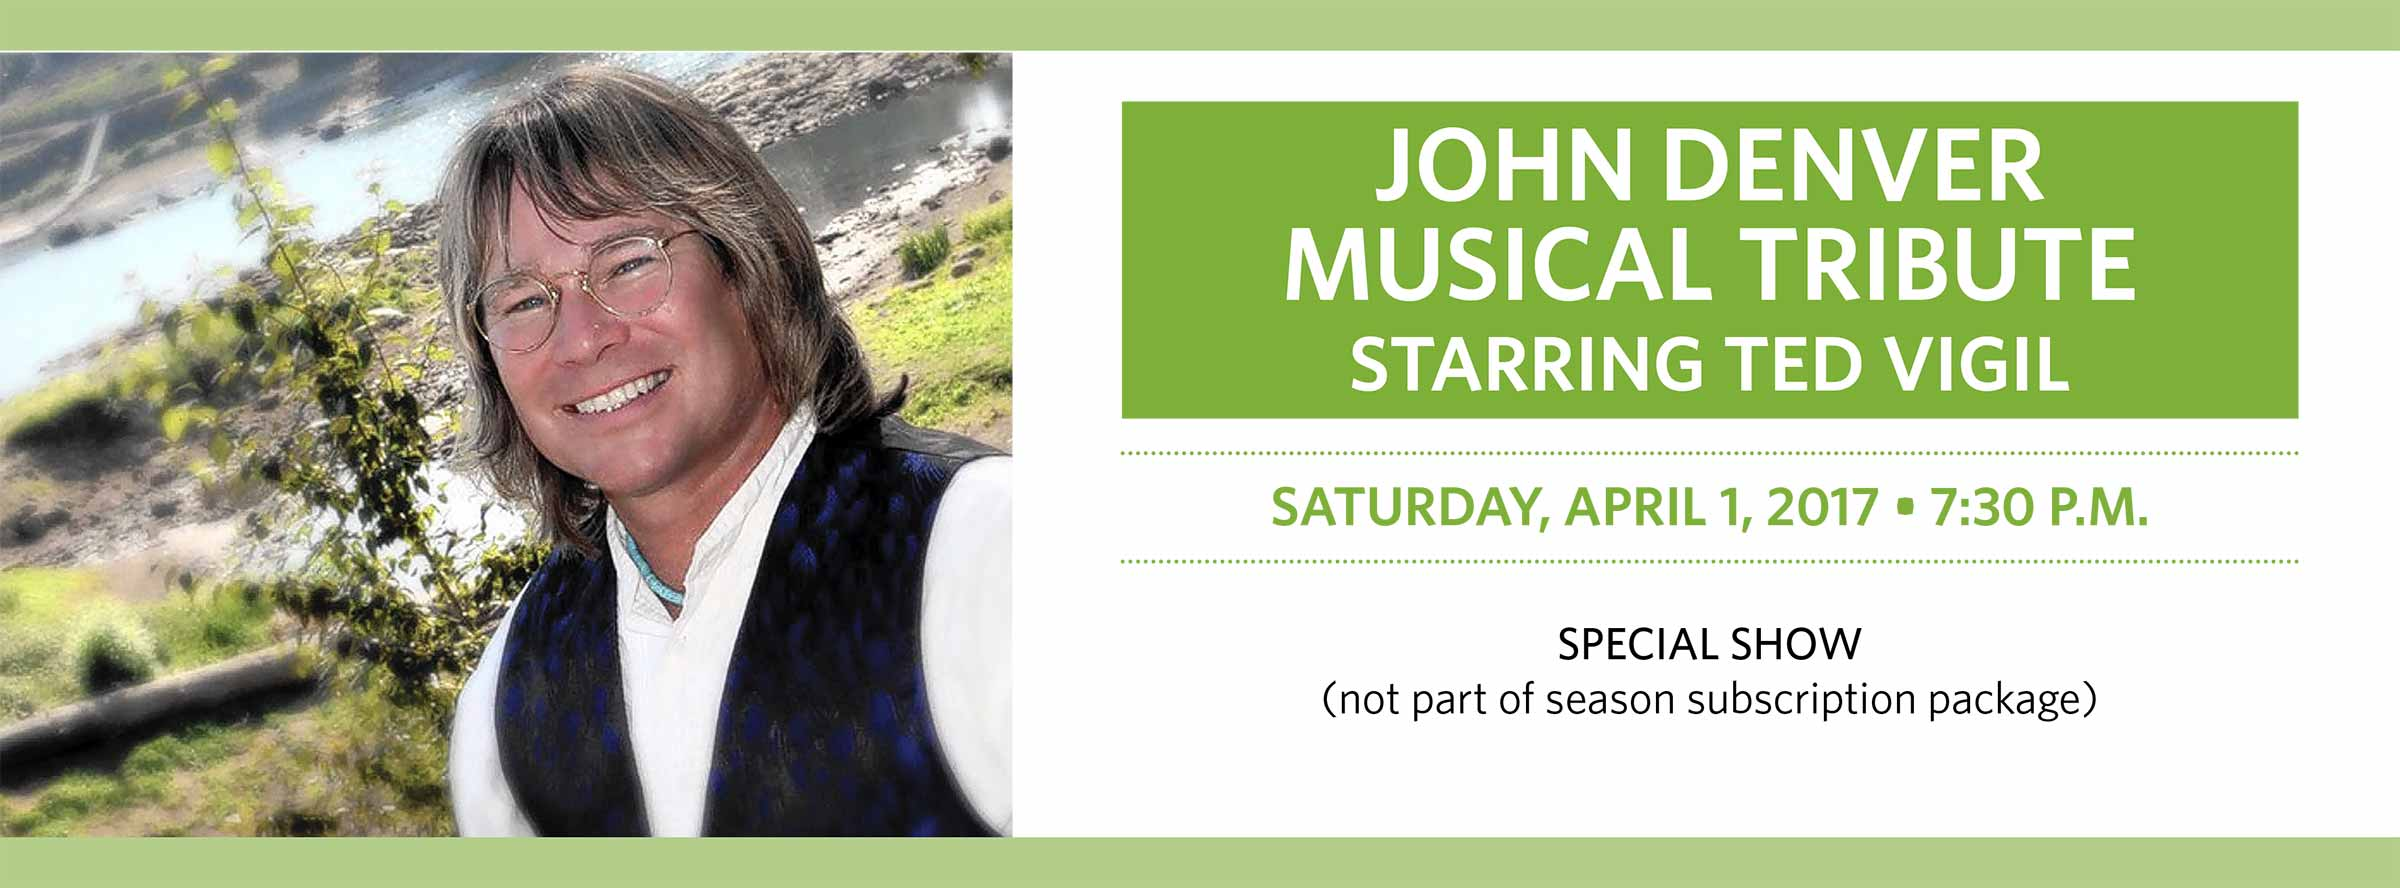 John Denver Musical Tribute